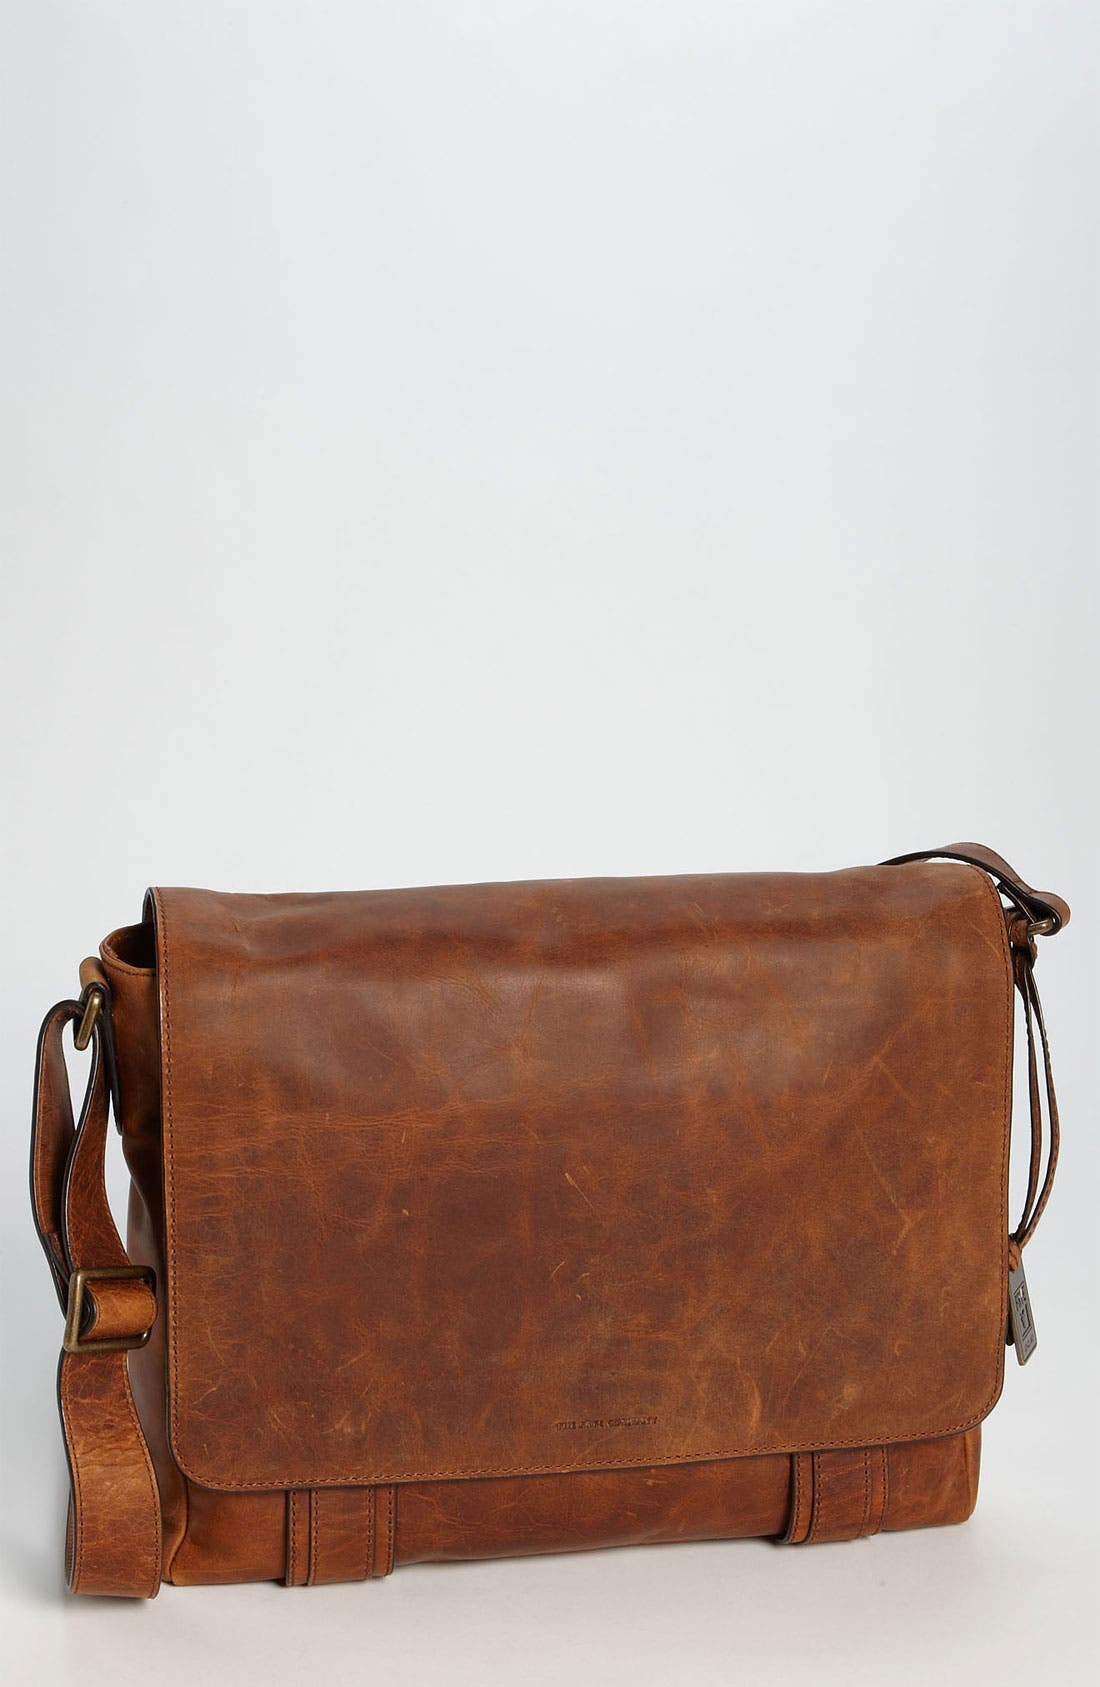 FRYE 'Logan' Messenger Bag - Brown in Antique Cognac